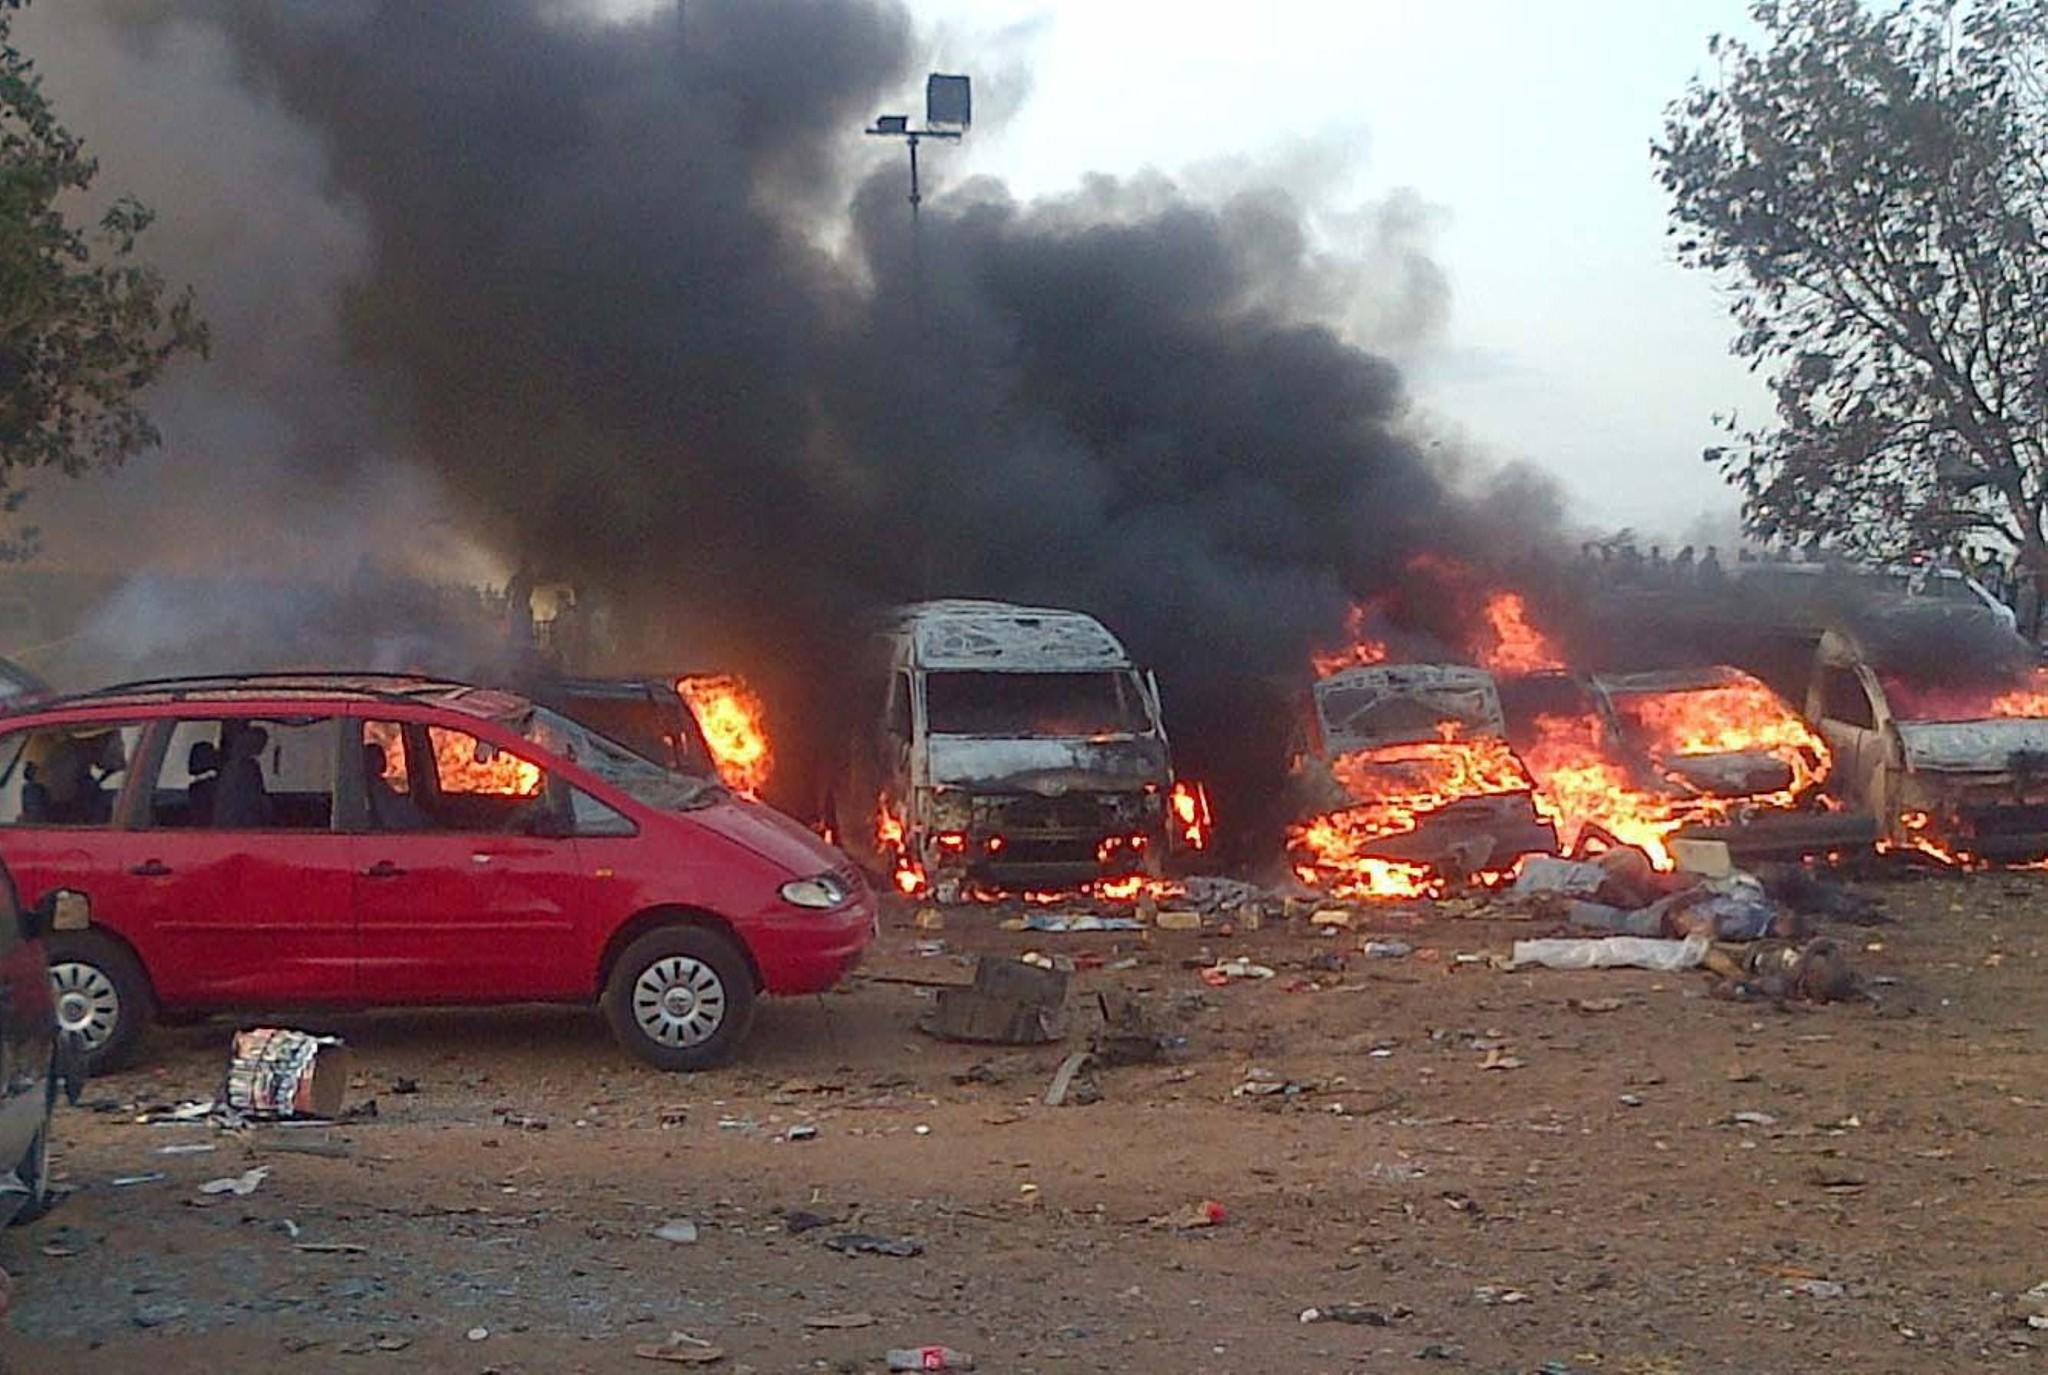 Vehicles burn after a bombing at a bus station in the Nigerian city of Abuja.